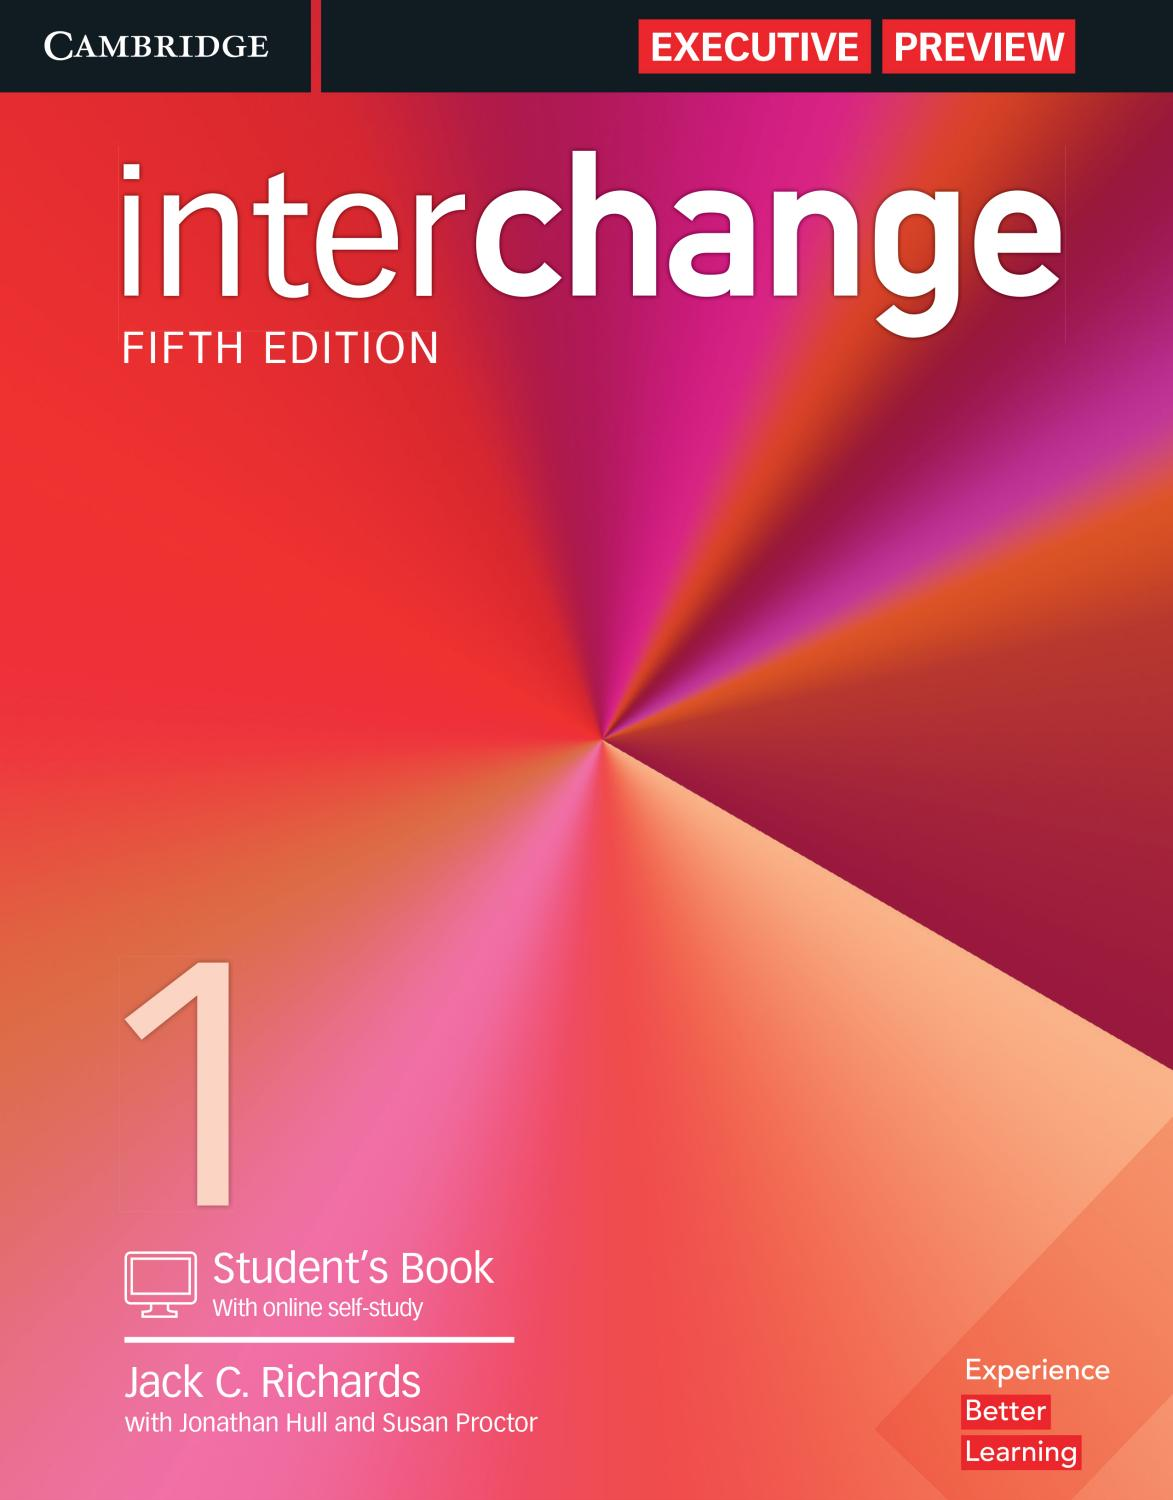 Libros B2 Ingles Pdf Interchange Fifth Edition Executive Preview By Cambridge